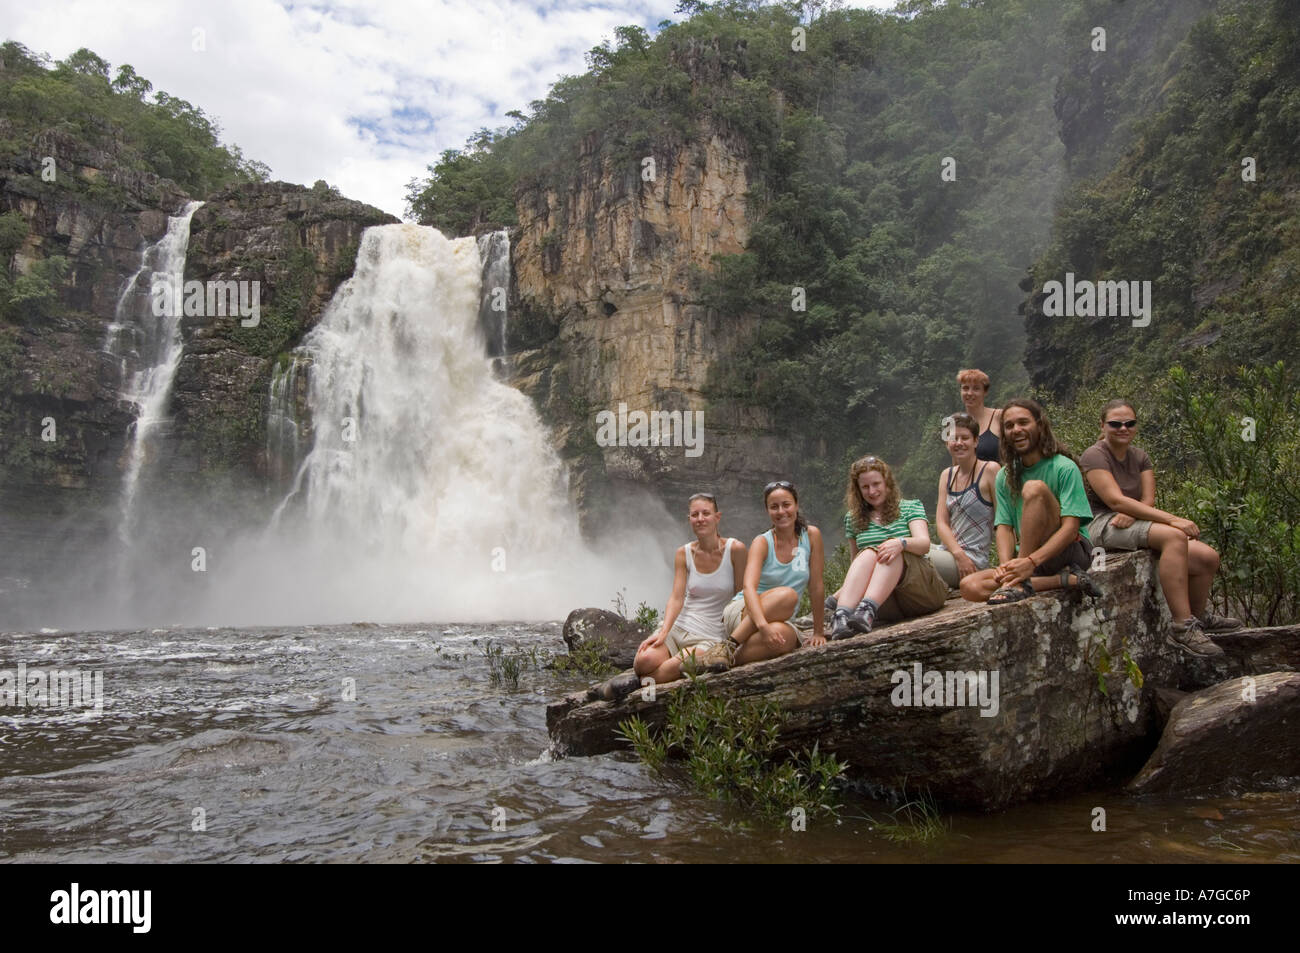 A group of european female tourists and guide at the 120 meter waterfall in The Chapada dos Veadeiros National Park - Stock Image